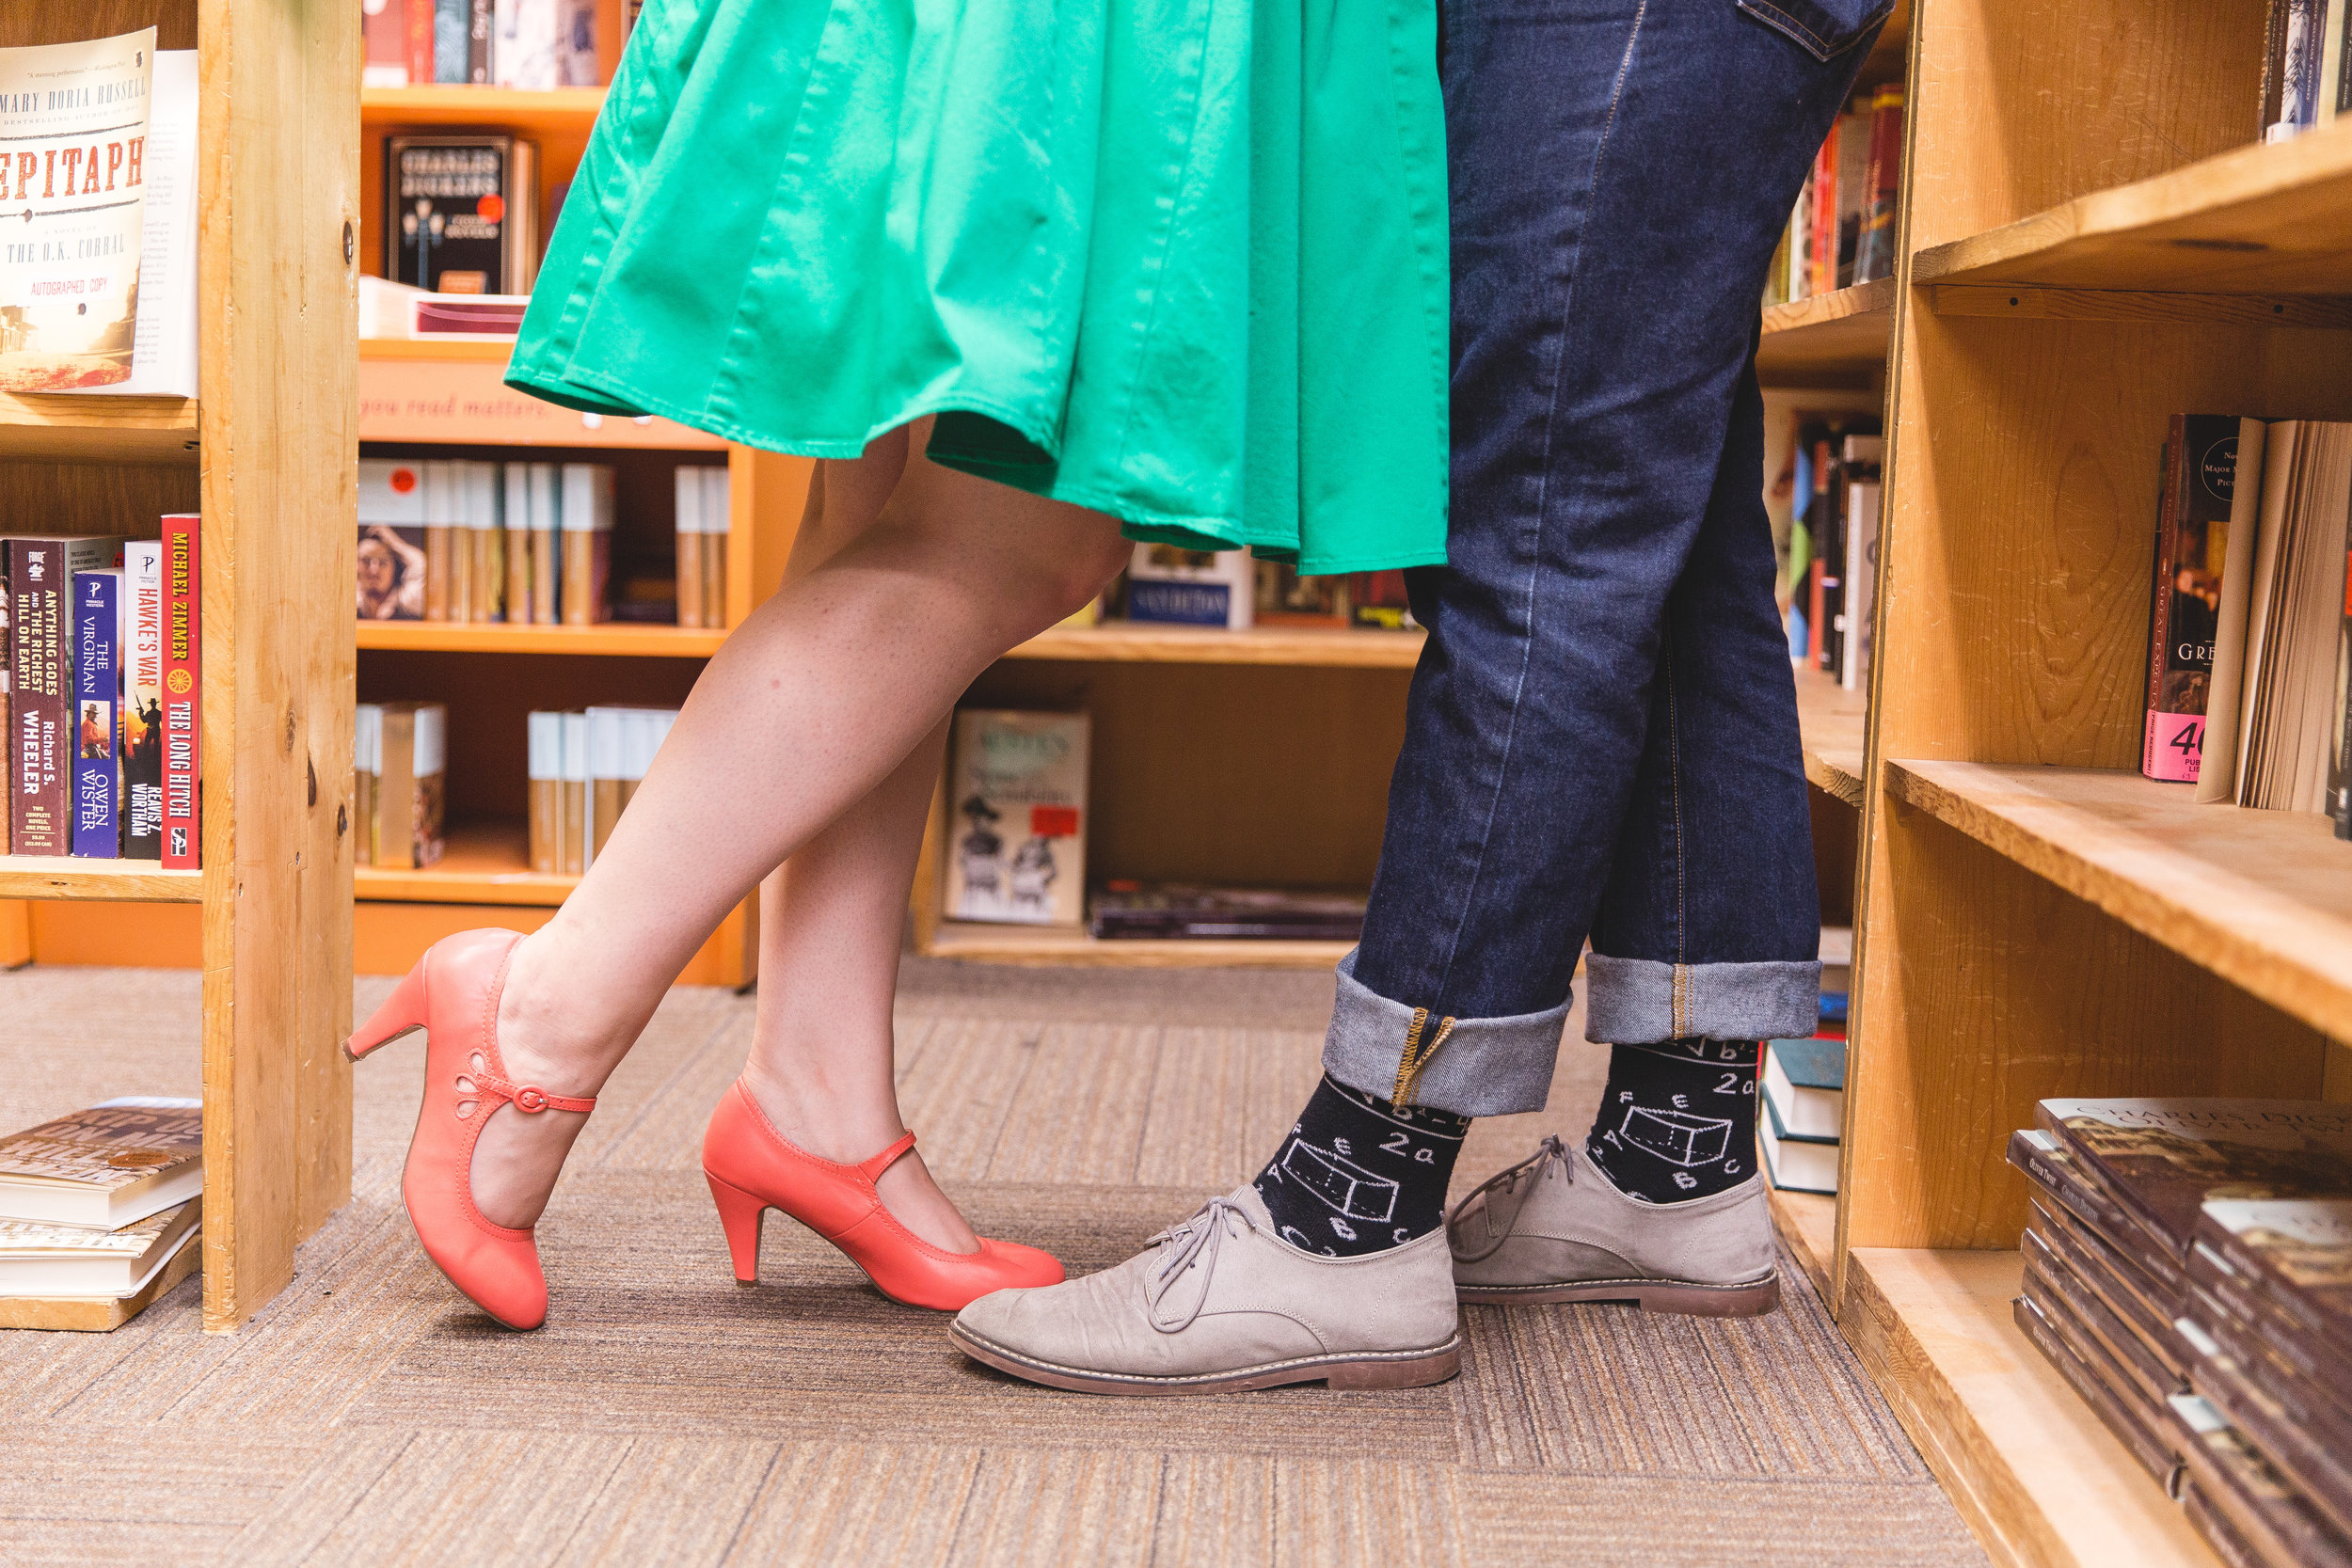 newly engaged couple show off their love for books by posing at the book loft in columbus ohio and by wearing clothing that match their personalities.